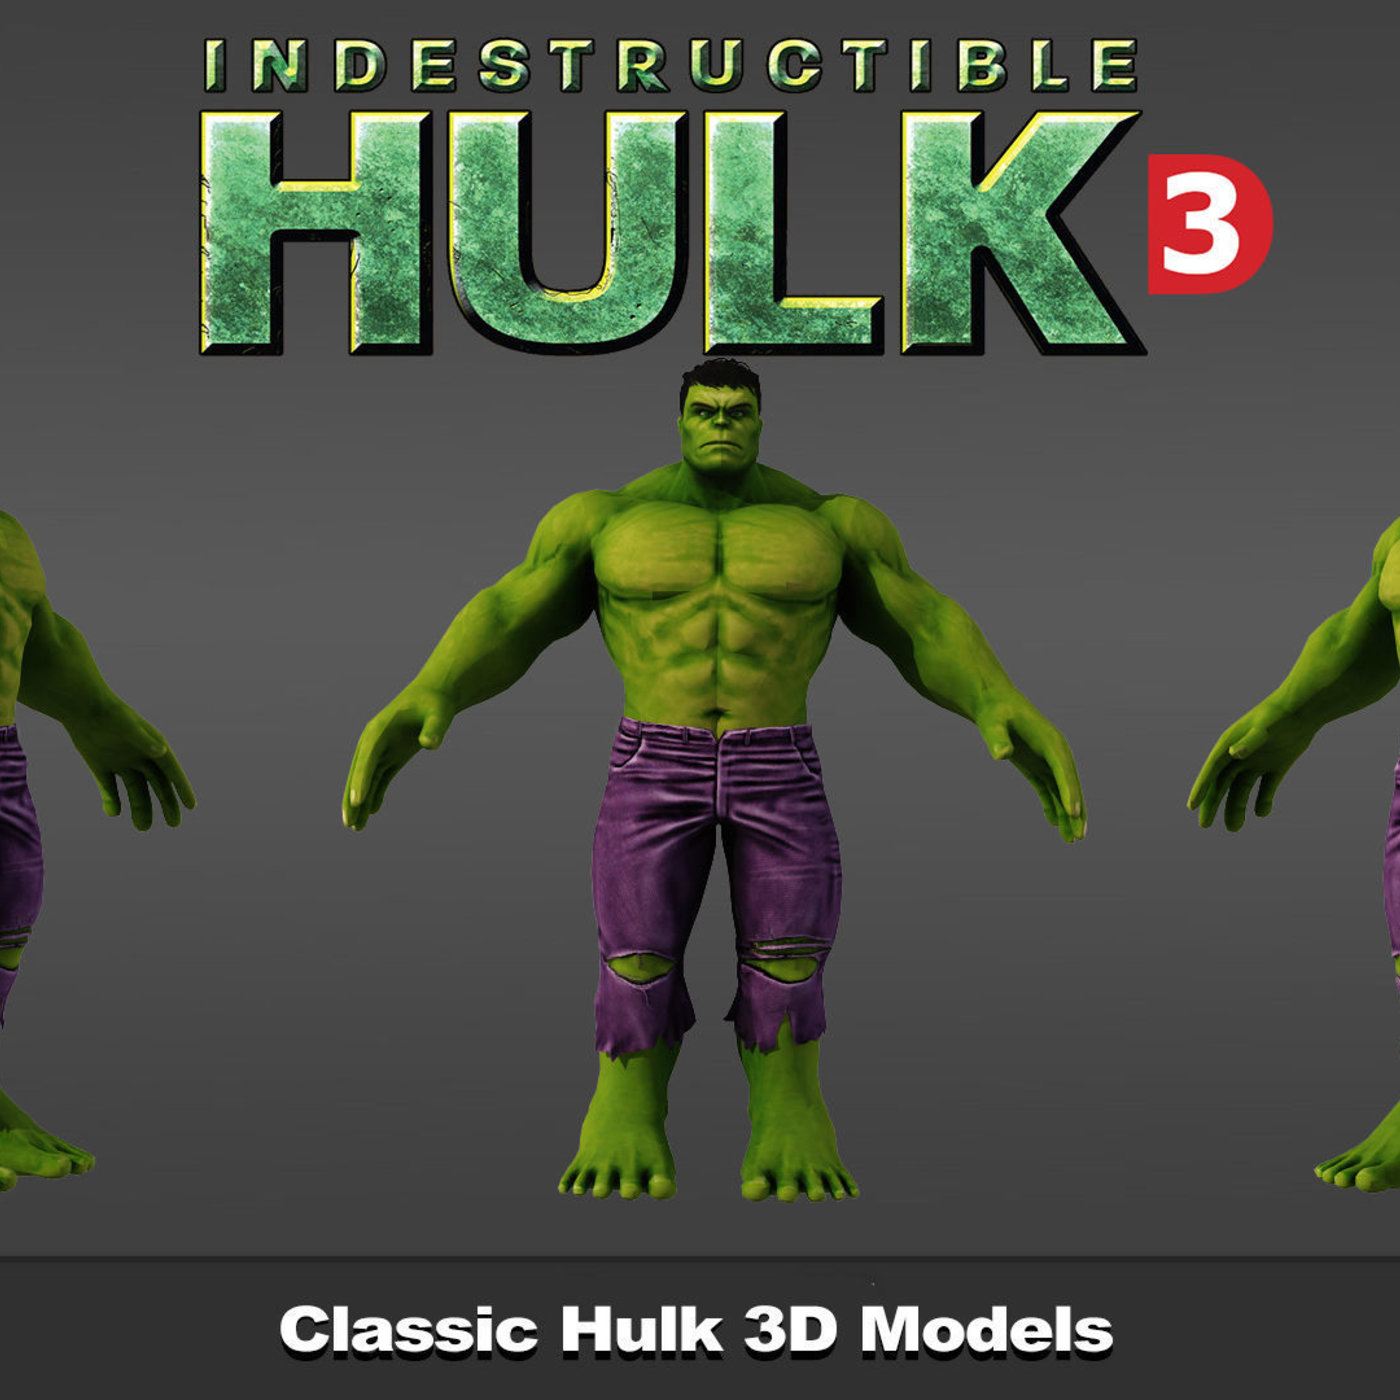 Hulk Classic 3d models in 3ds max 2010 render vray 2.4